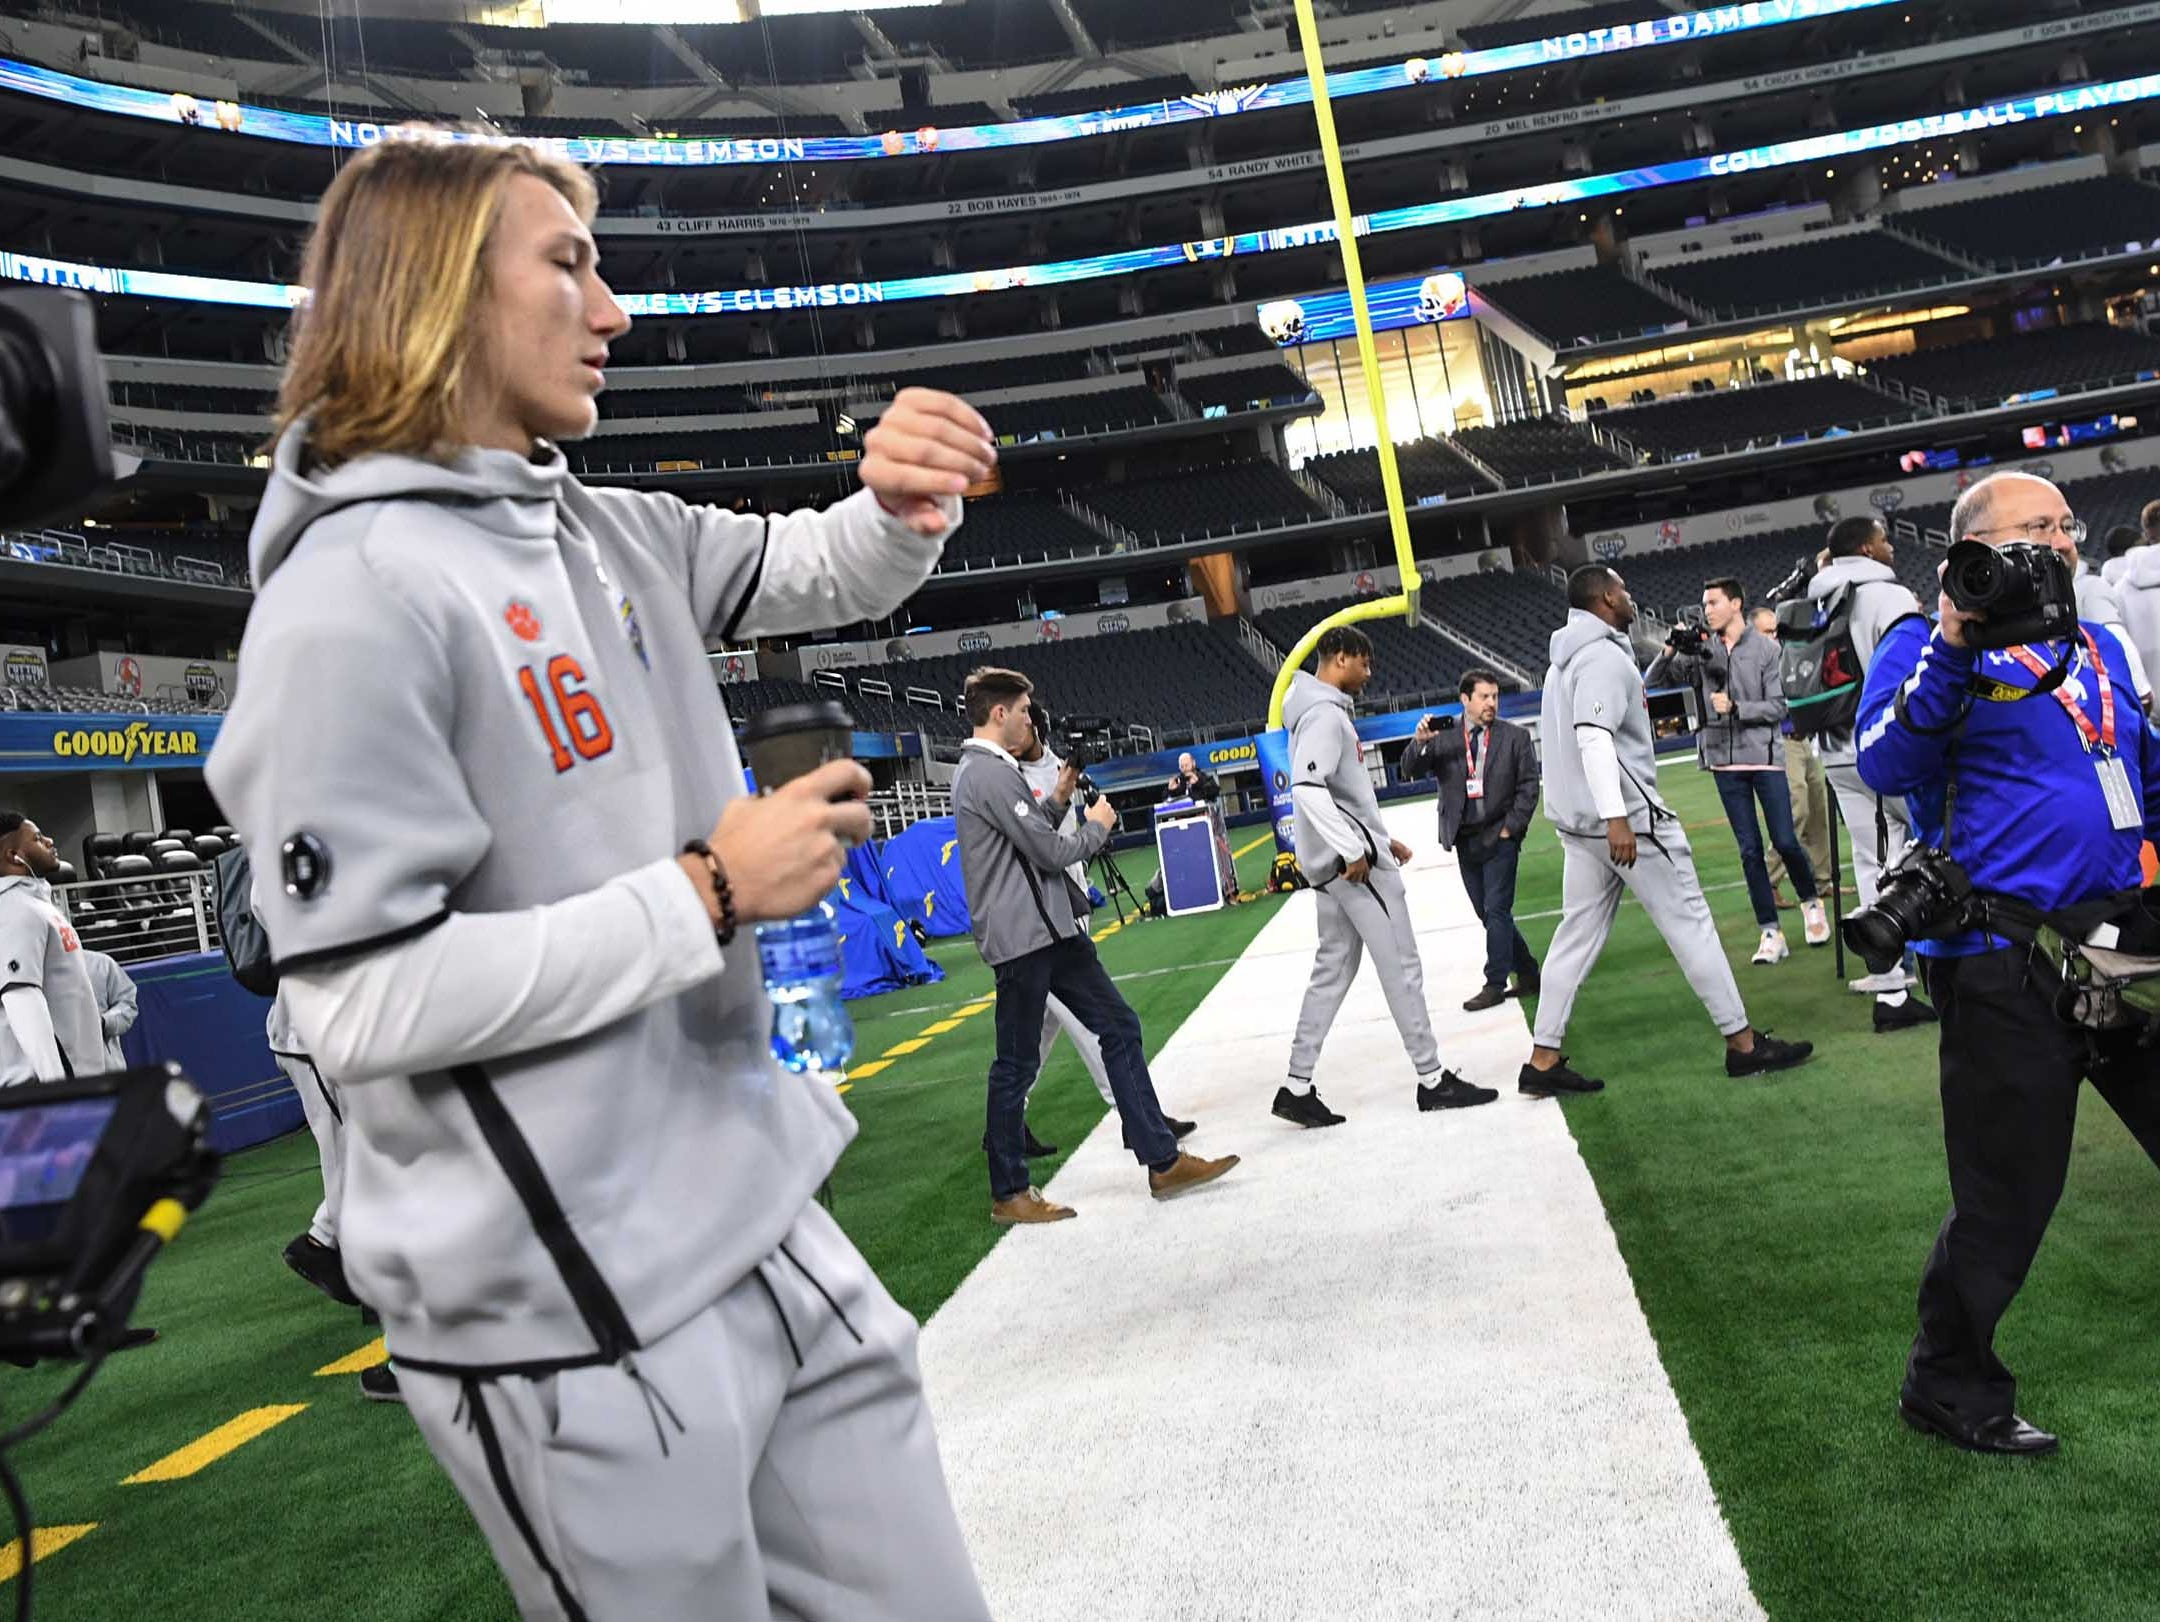 Clemson quarterback Trevor Lawrence looks at his watch entering Media Day for Clemson and Notre Dame at the AT&T Stadium in Dallas December 27, 2018.